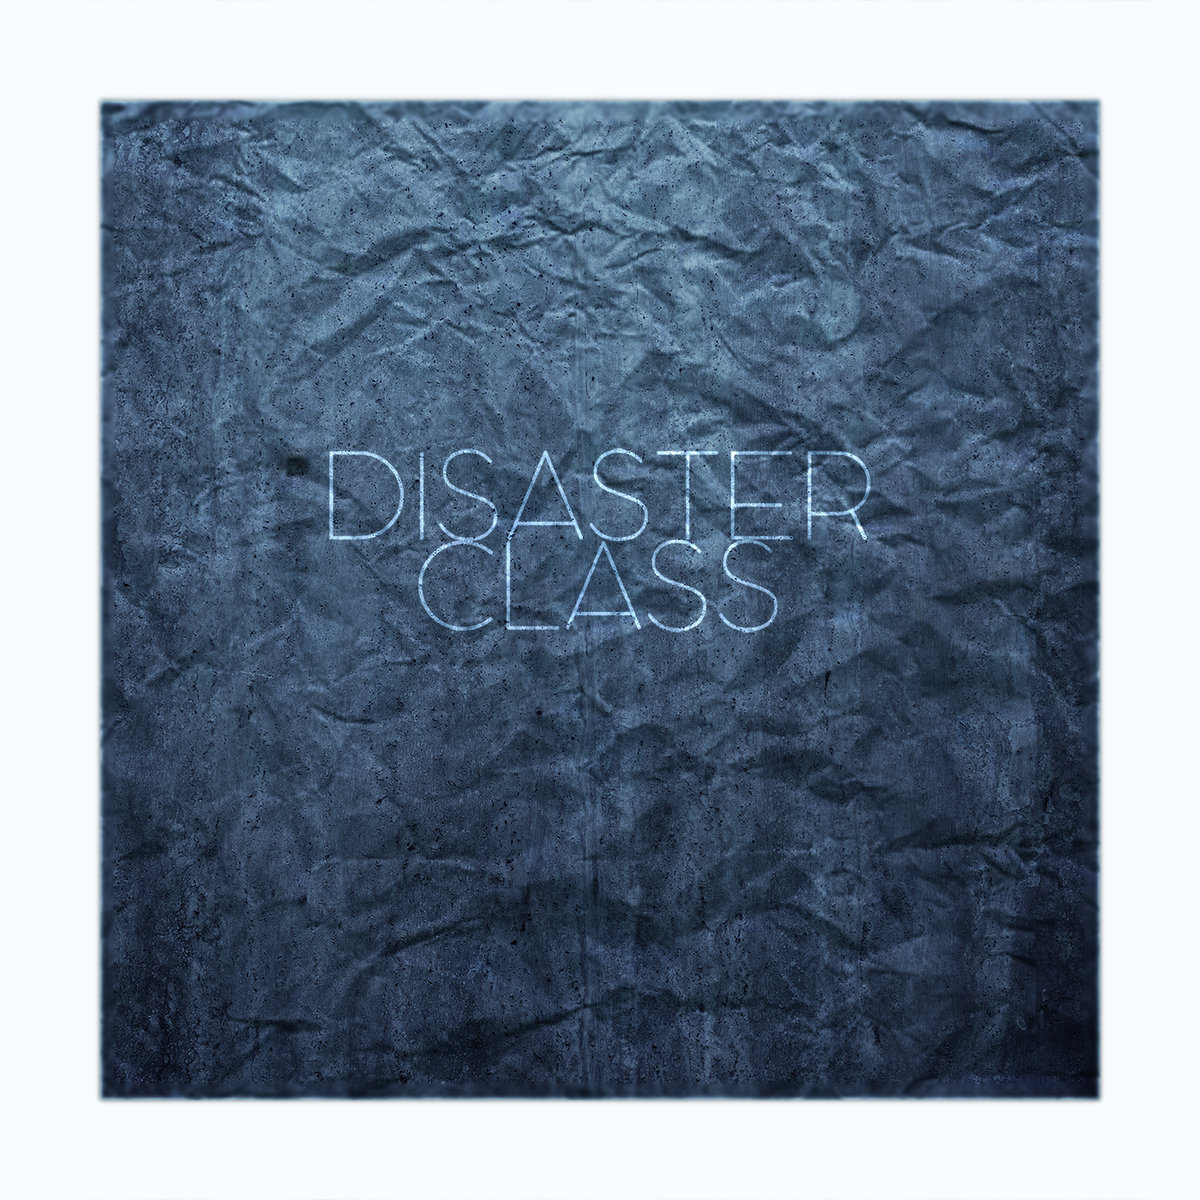 You can listen to two of Disaster Class's albums. / Image courtesy of the artist // Published: 3.30.20